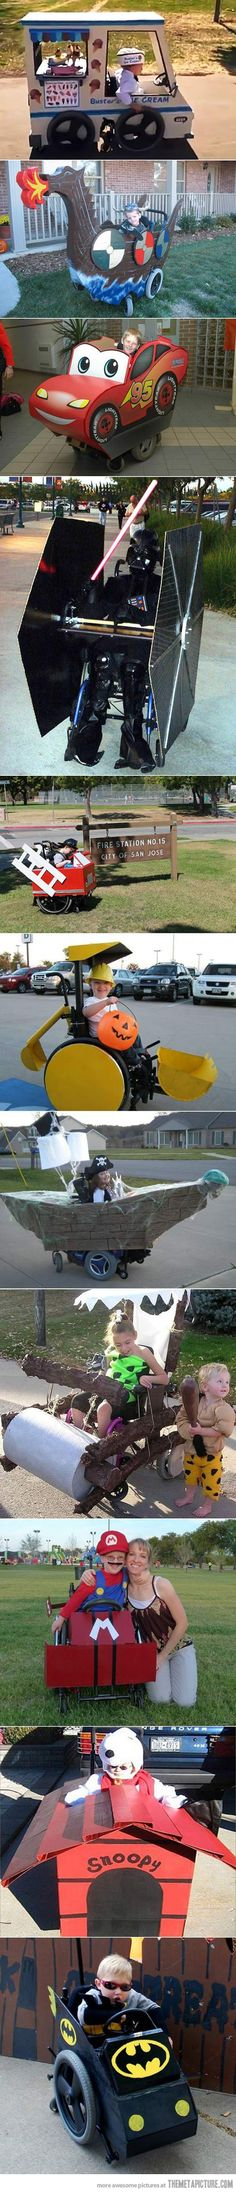 Awesome HalloweenI was impressed when I first saw these costumes ~ even more impressed to see that they are for kids in Wheel Chairs! Creative Costumes, Cute Costumes, Awesome Costumes, Halloween Costumes For Kids, Holidays Halloween, Happy Halloween, Cosplay Costumes, Halloween Party, Costume Ideas